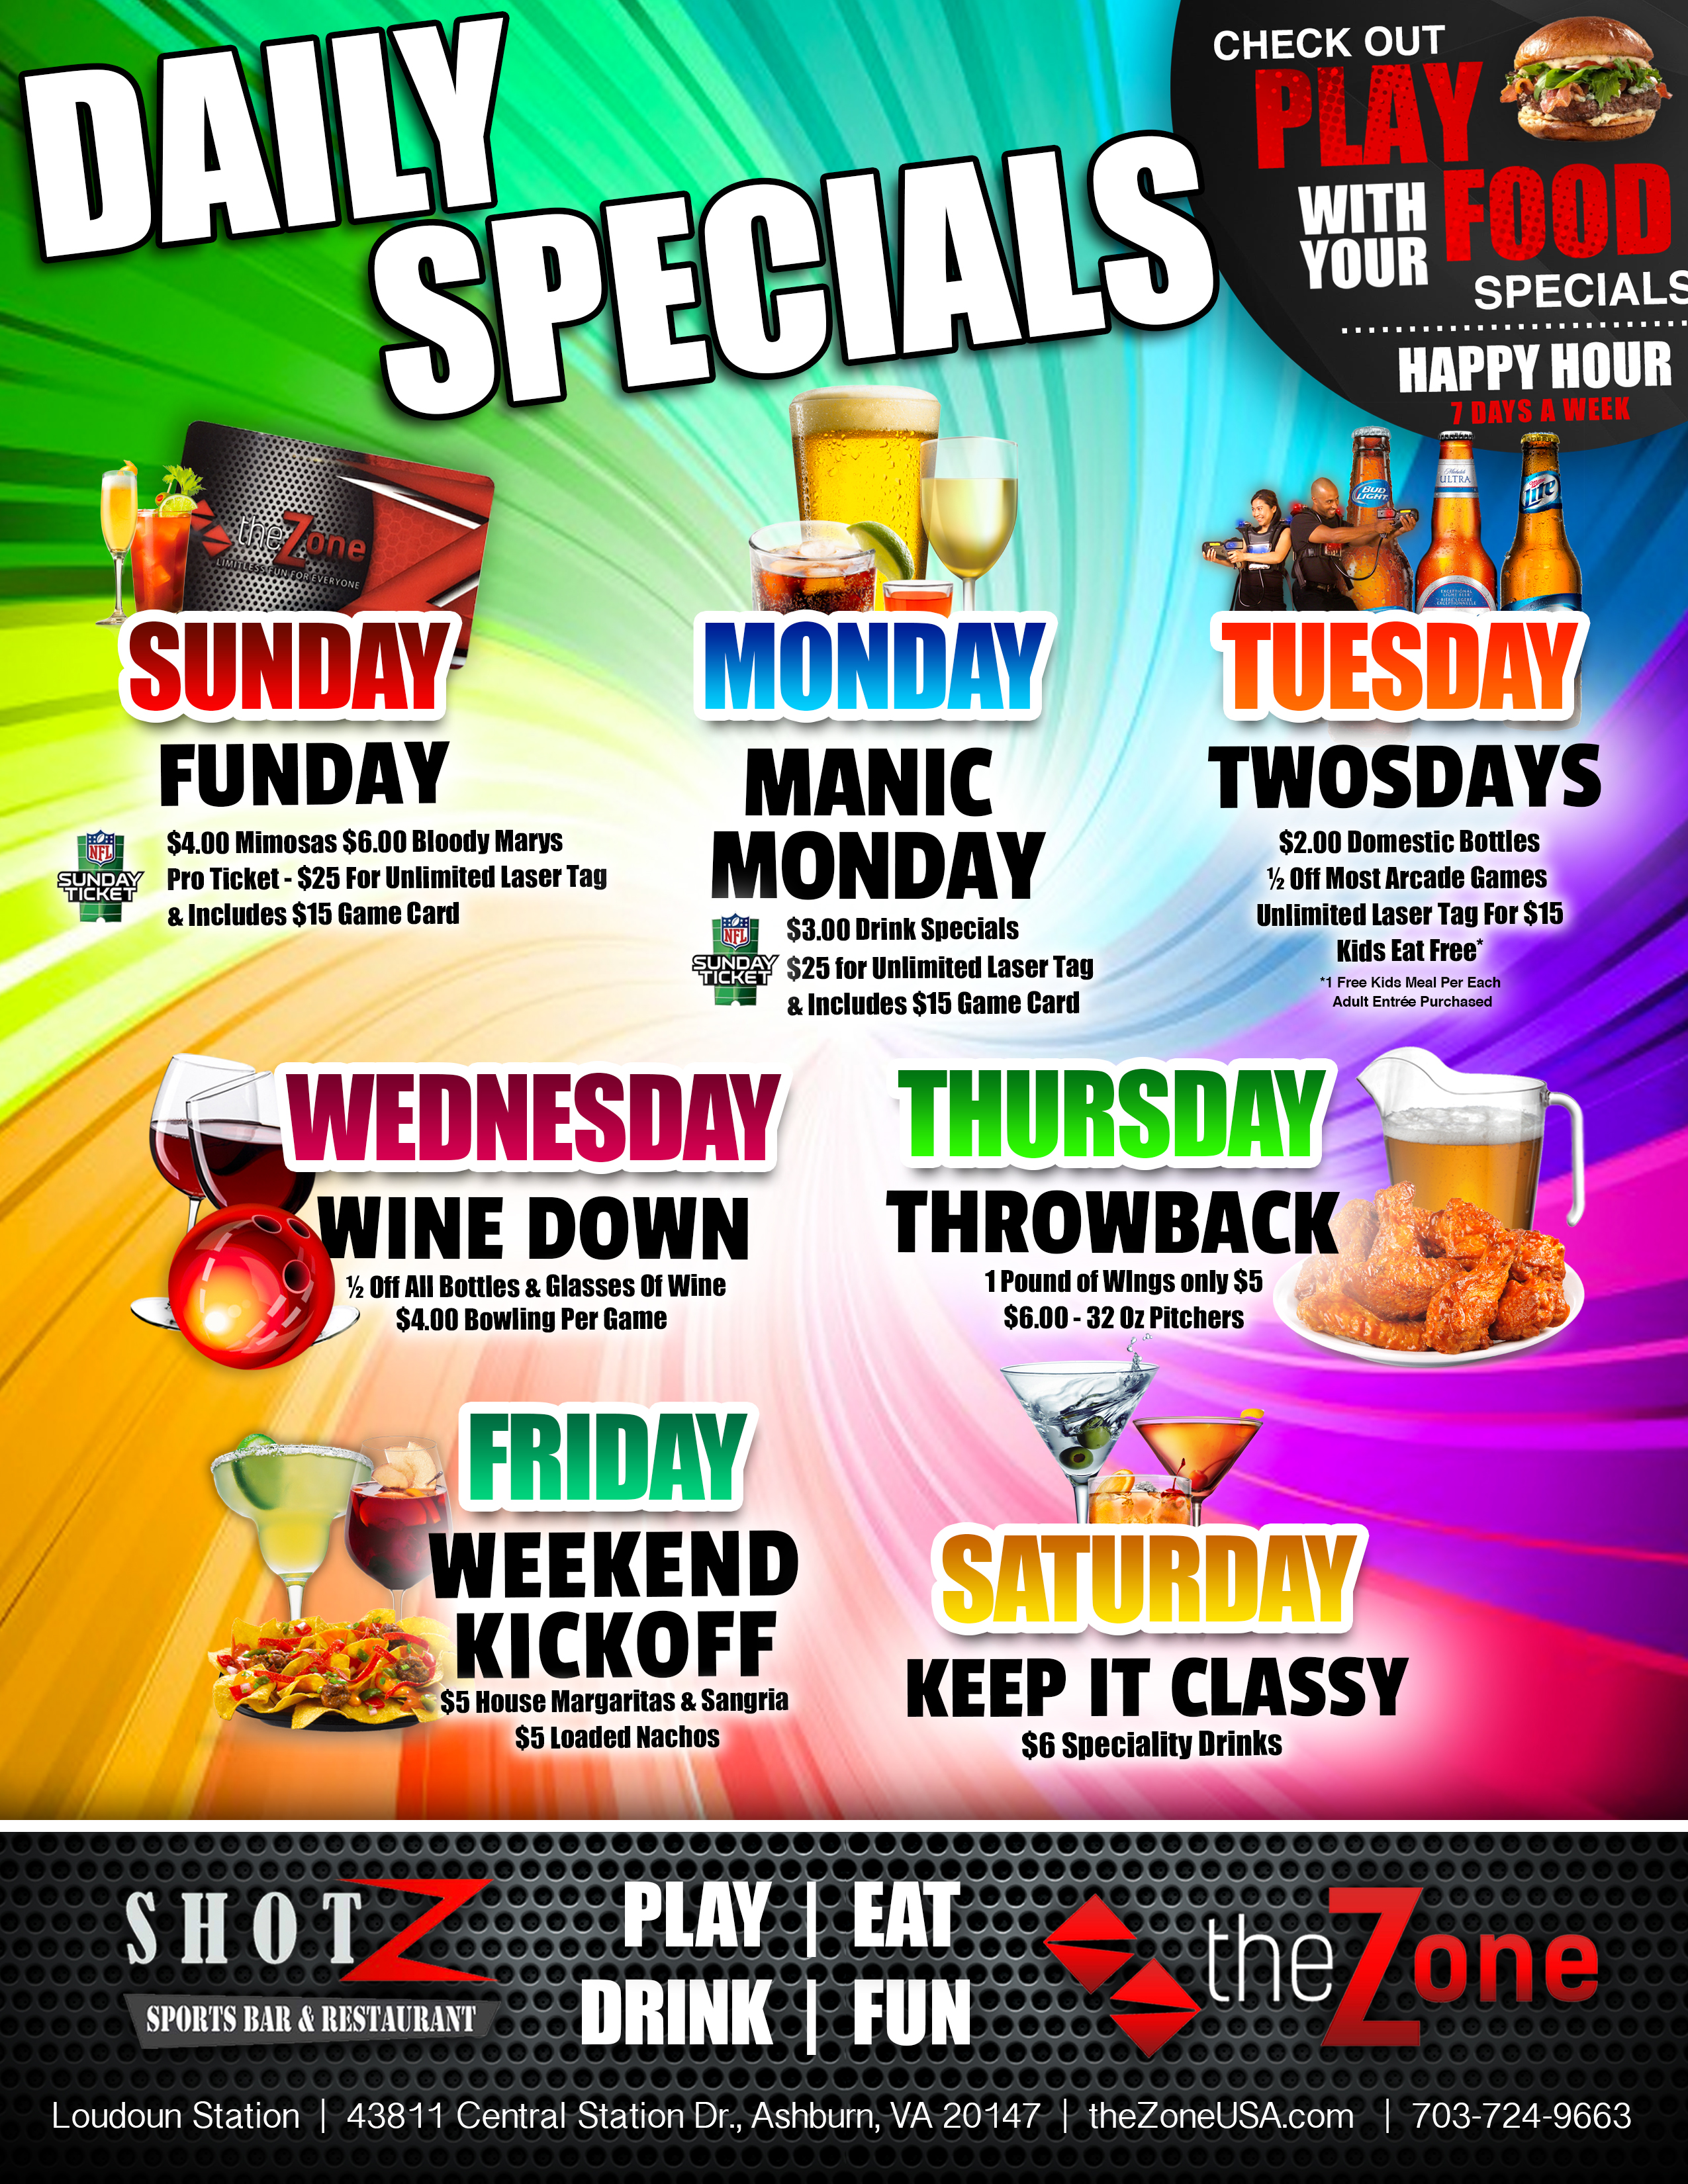 Daily Specials The Zone Restaurant And Bar In Ashburn Va